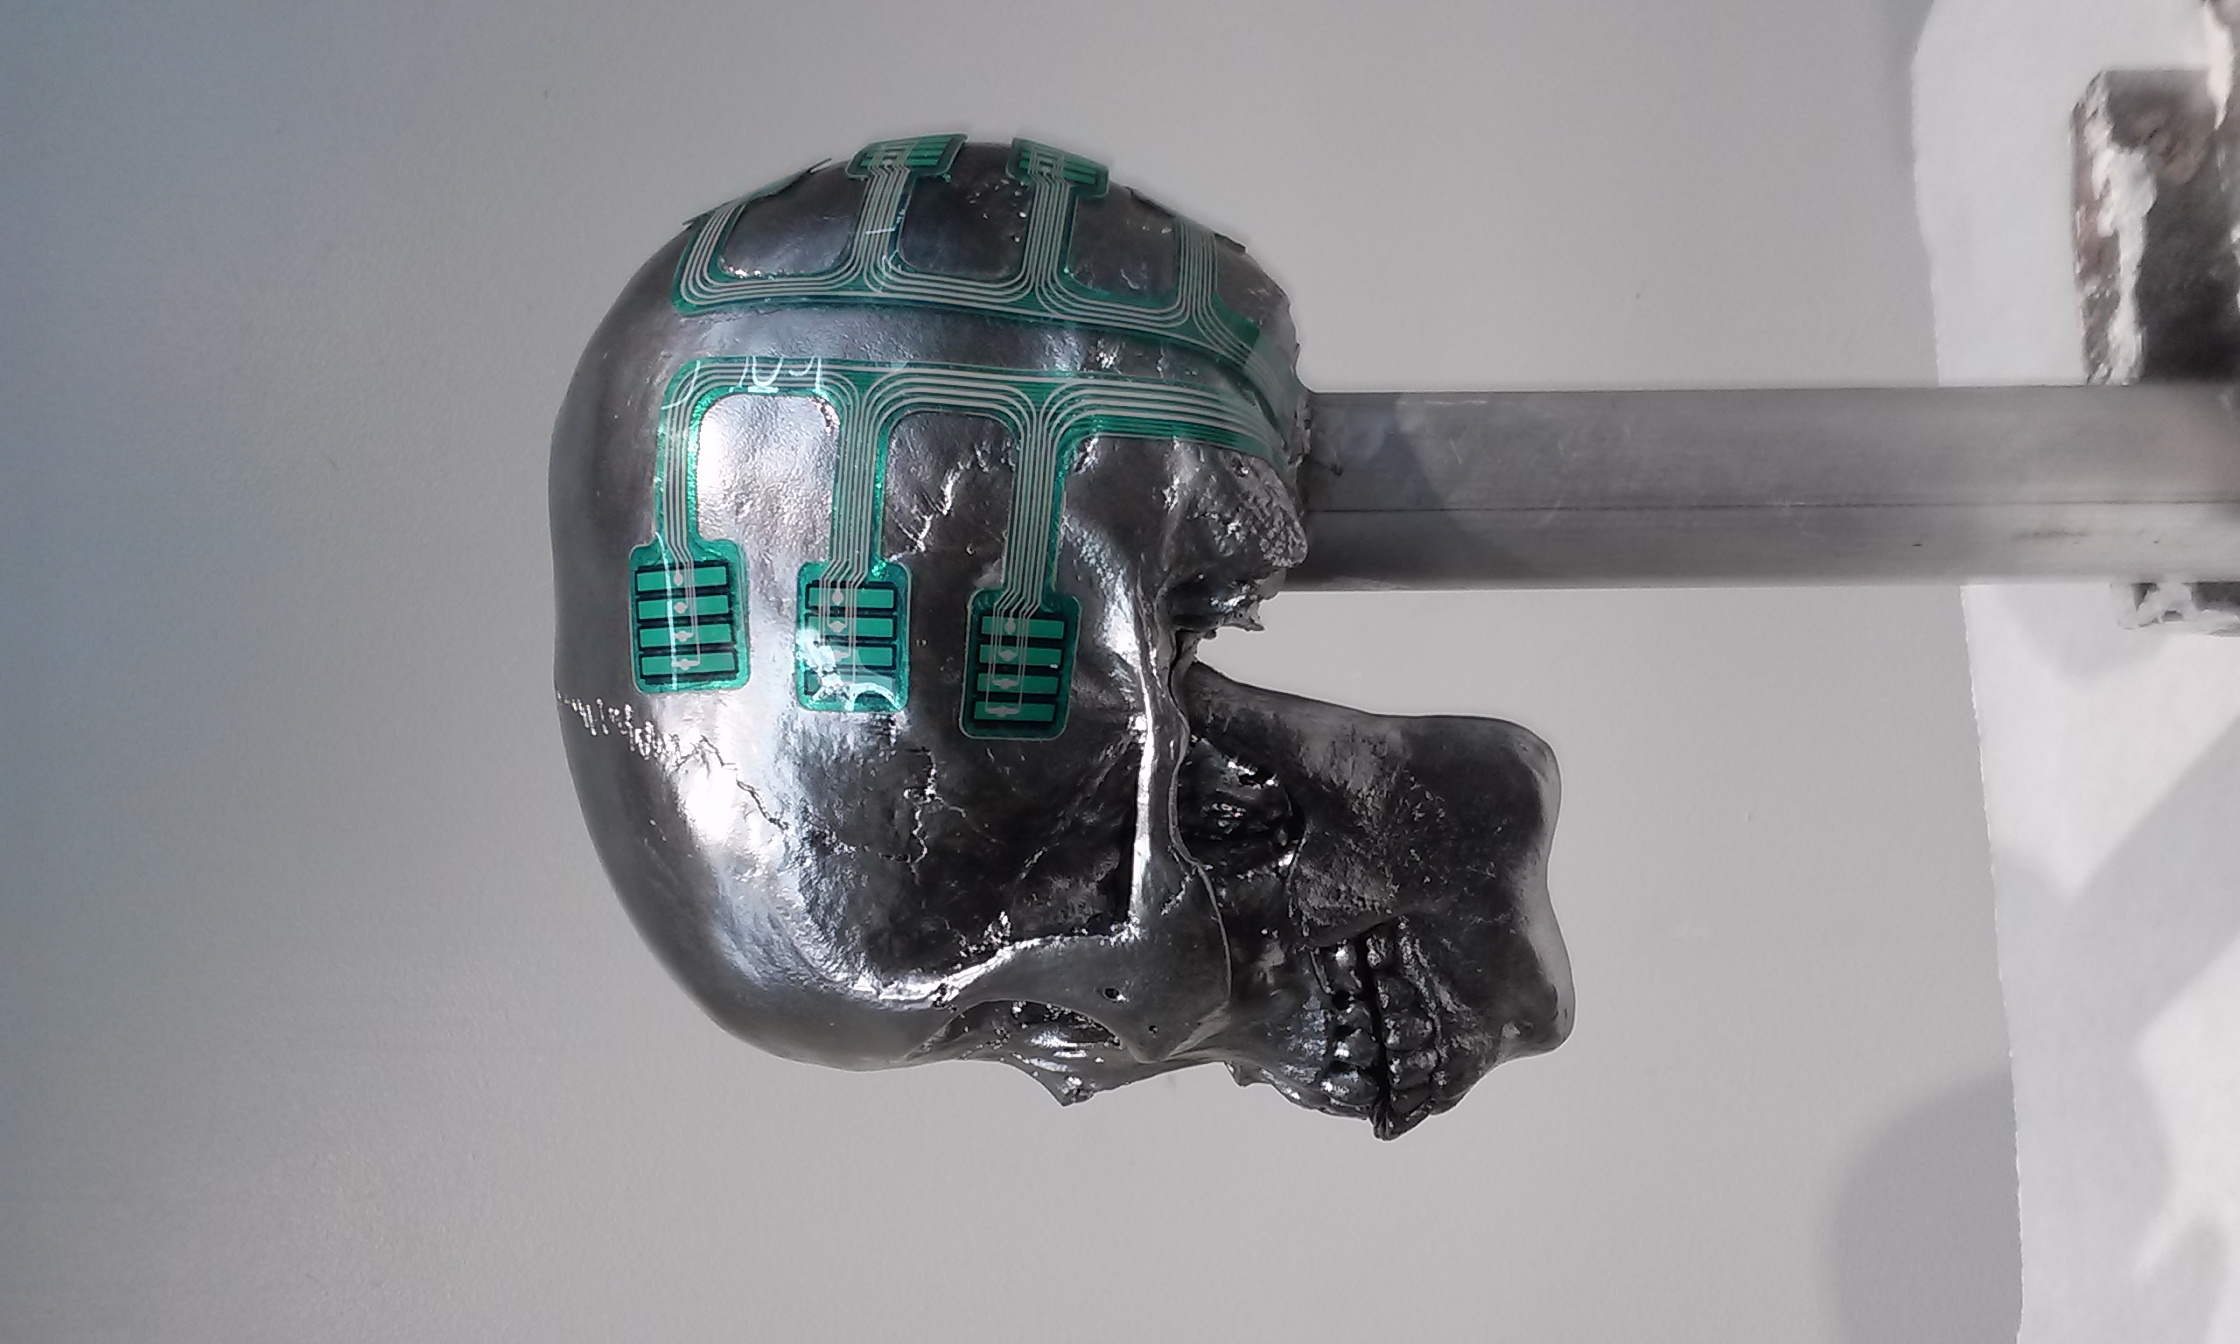 CSI metalic skull